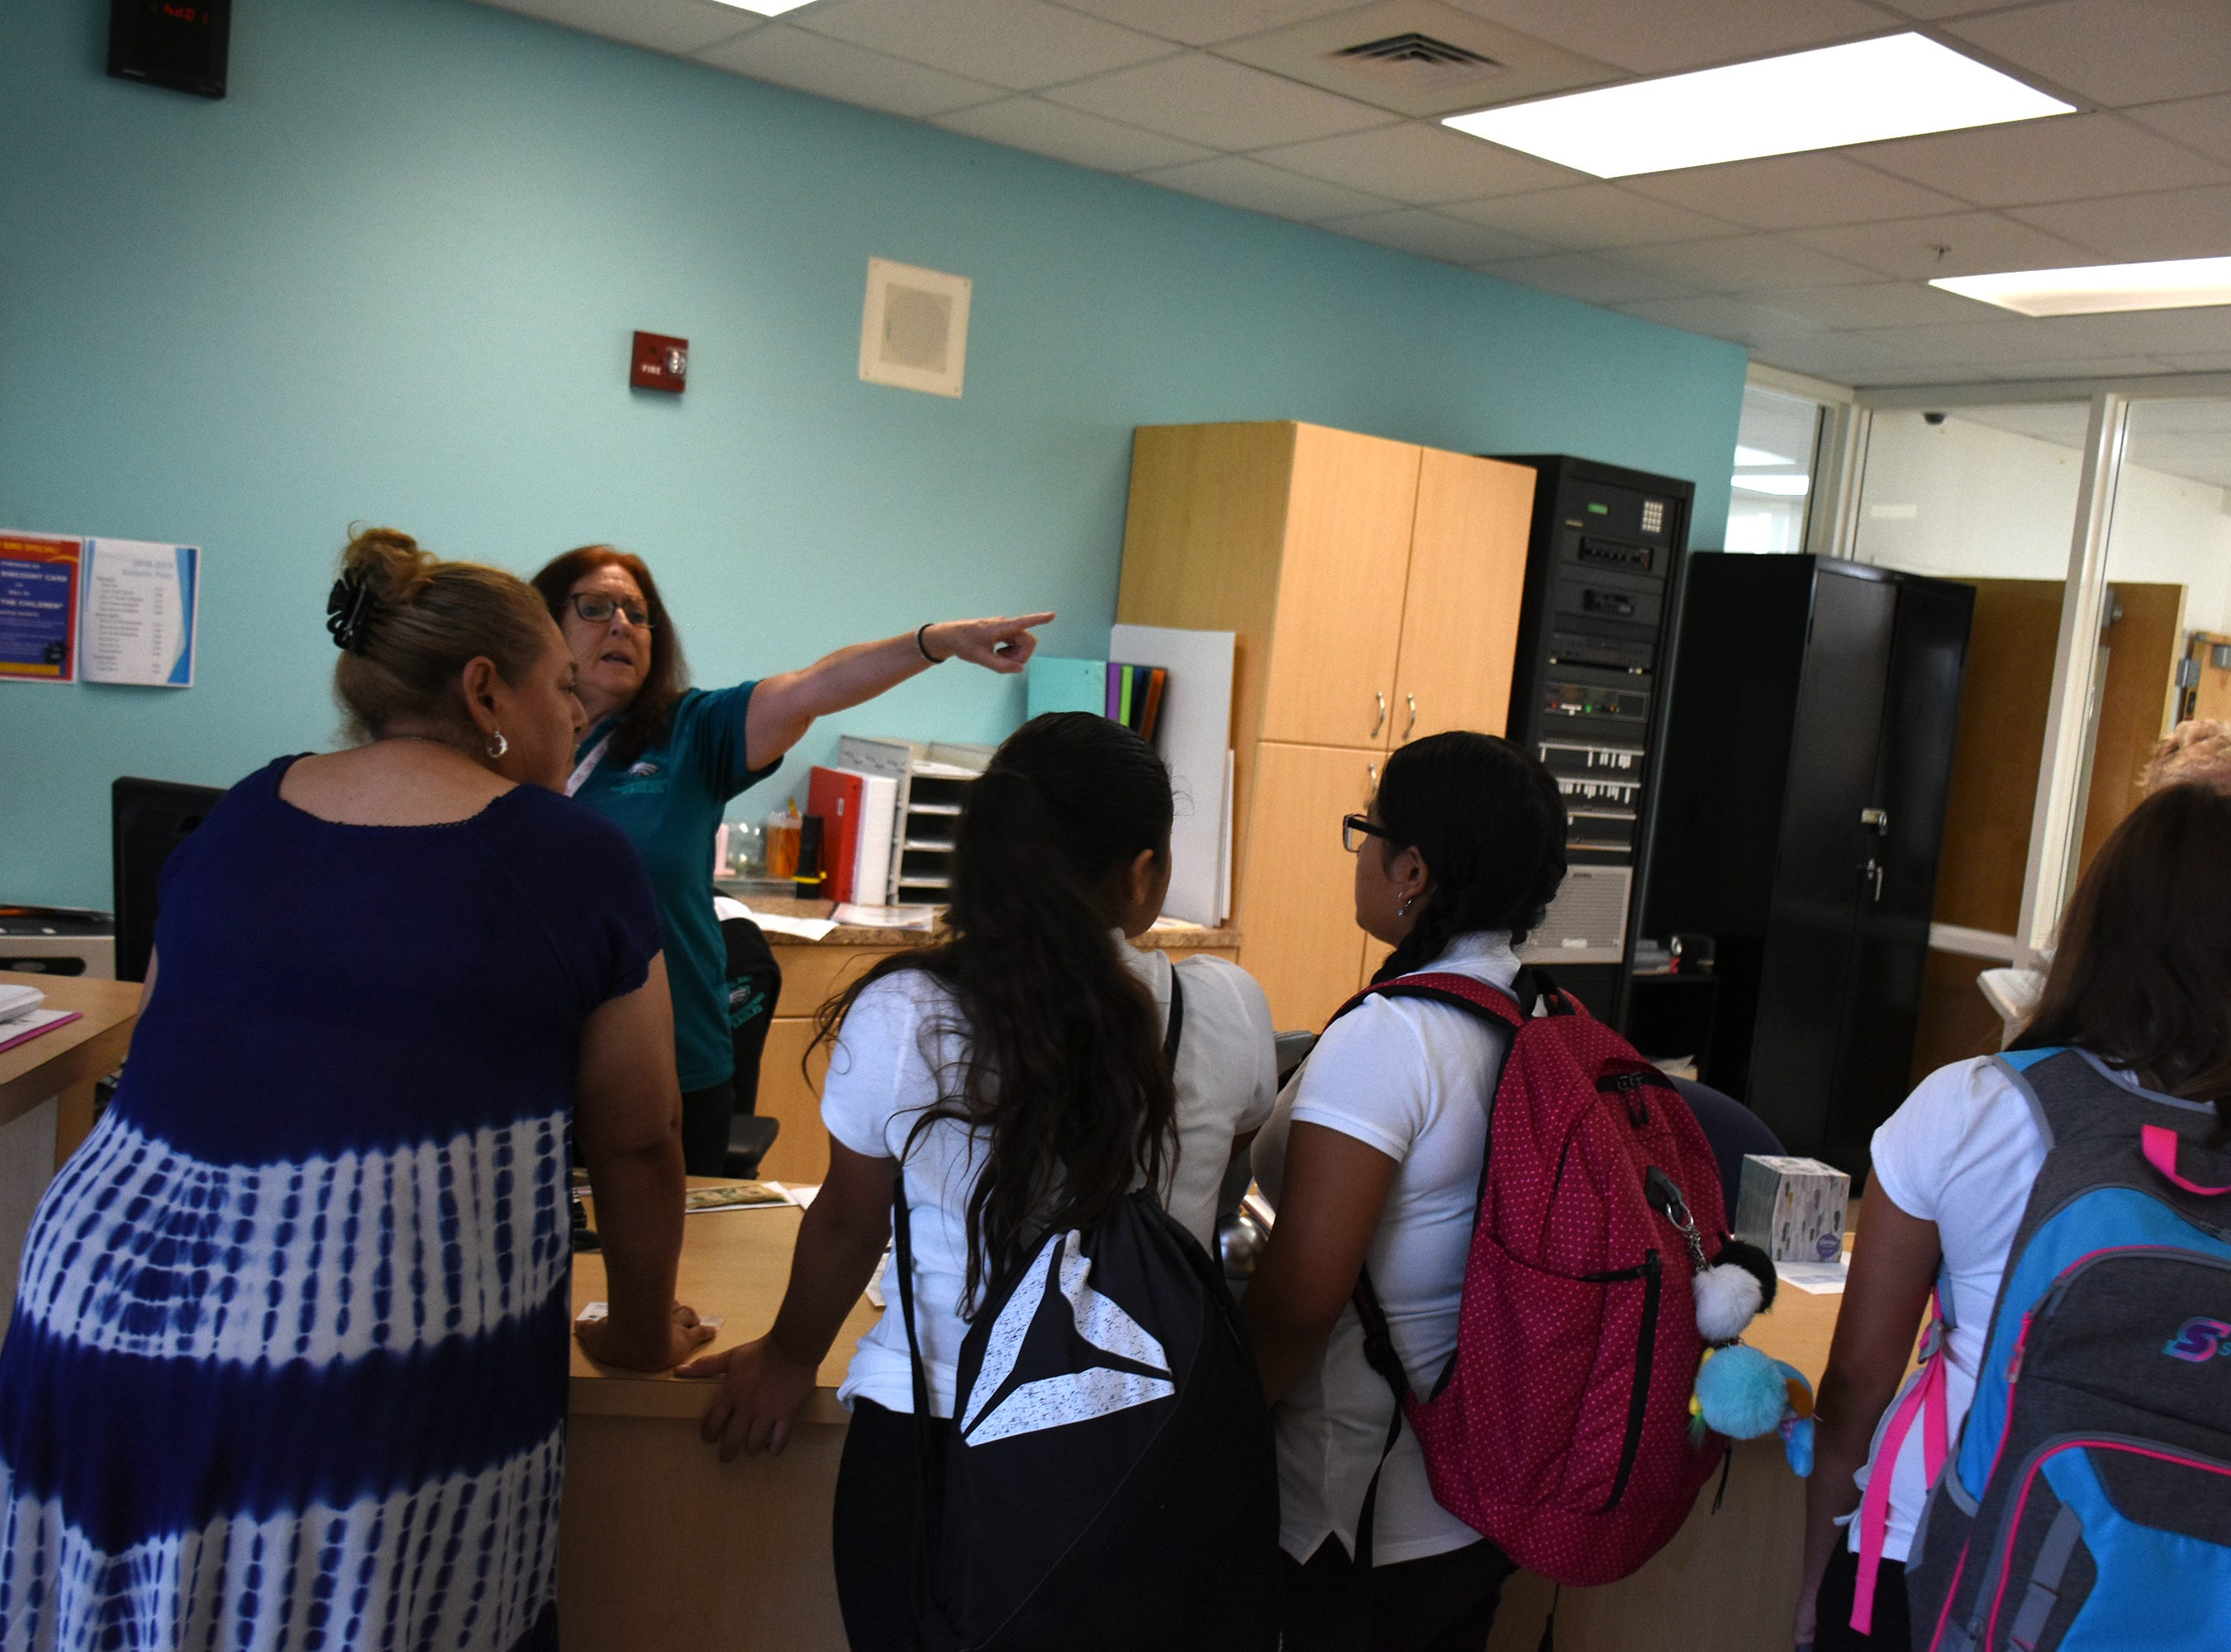 School secretary Rona Donato directs students on the first day at Marco Island Charter Middle School. Marco Island students, along with all of Collier County, returned to school for the first day of classes in the new school year on Wednesday.